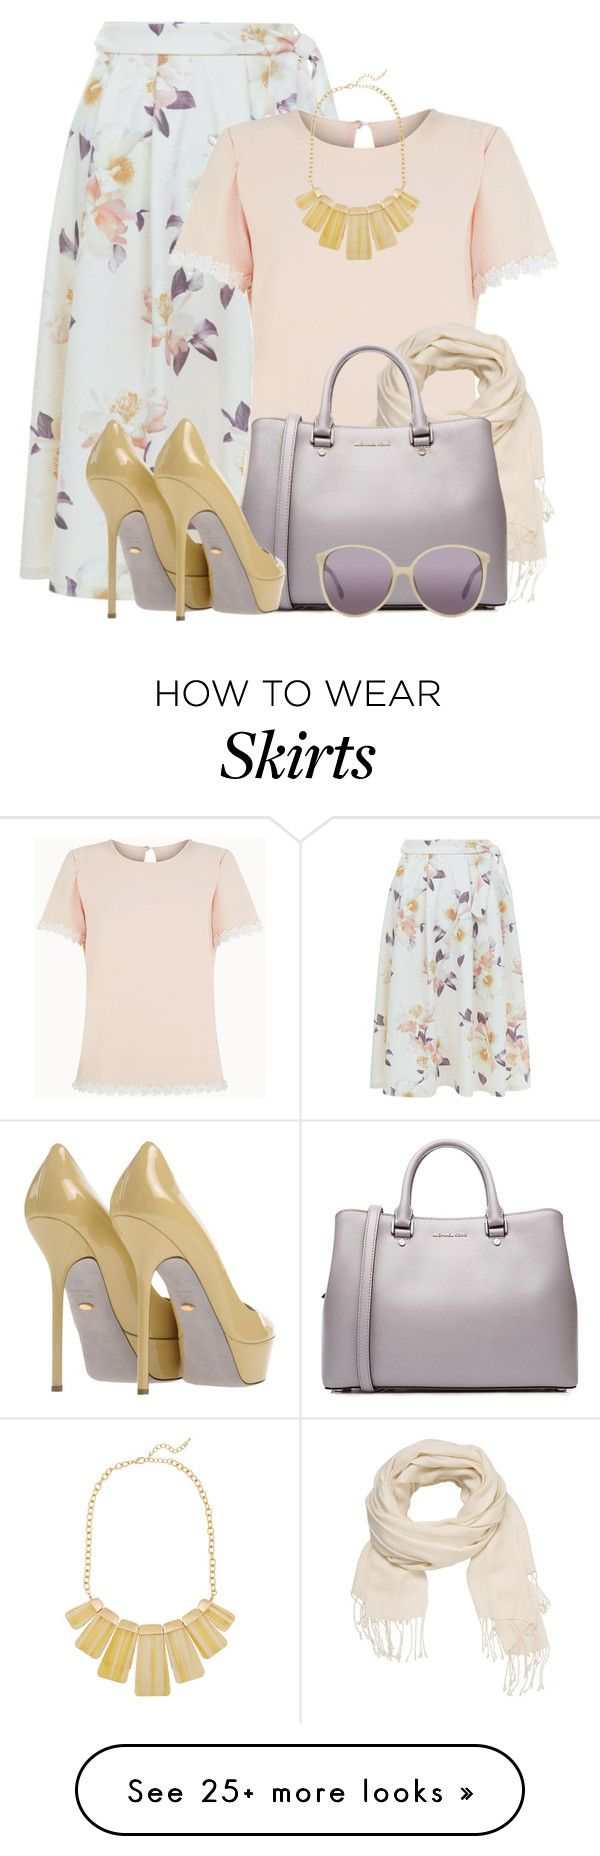 """New Look Floral Midi Skirt"" by brendariley-1 on Polyvore featuring New Look, Poppy Lux, maurices, Kenneth Jay Lane, MICHAEL Michael Kors, Sergio Rossi and Linda Farrow"